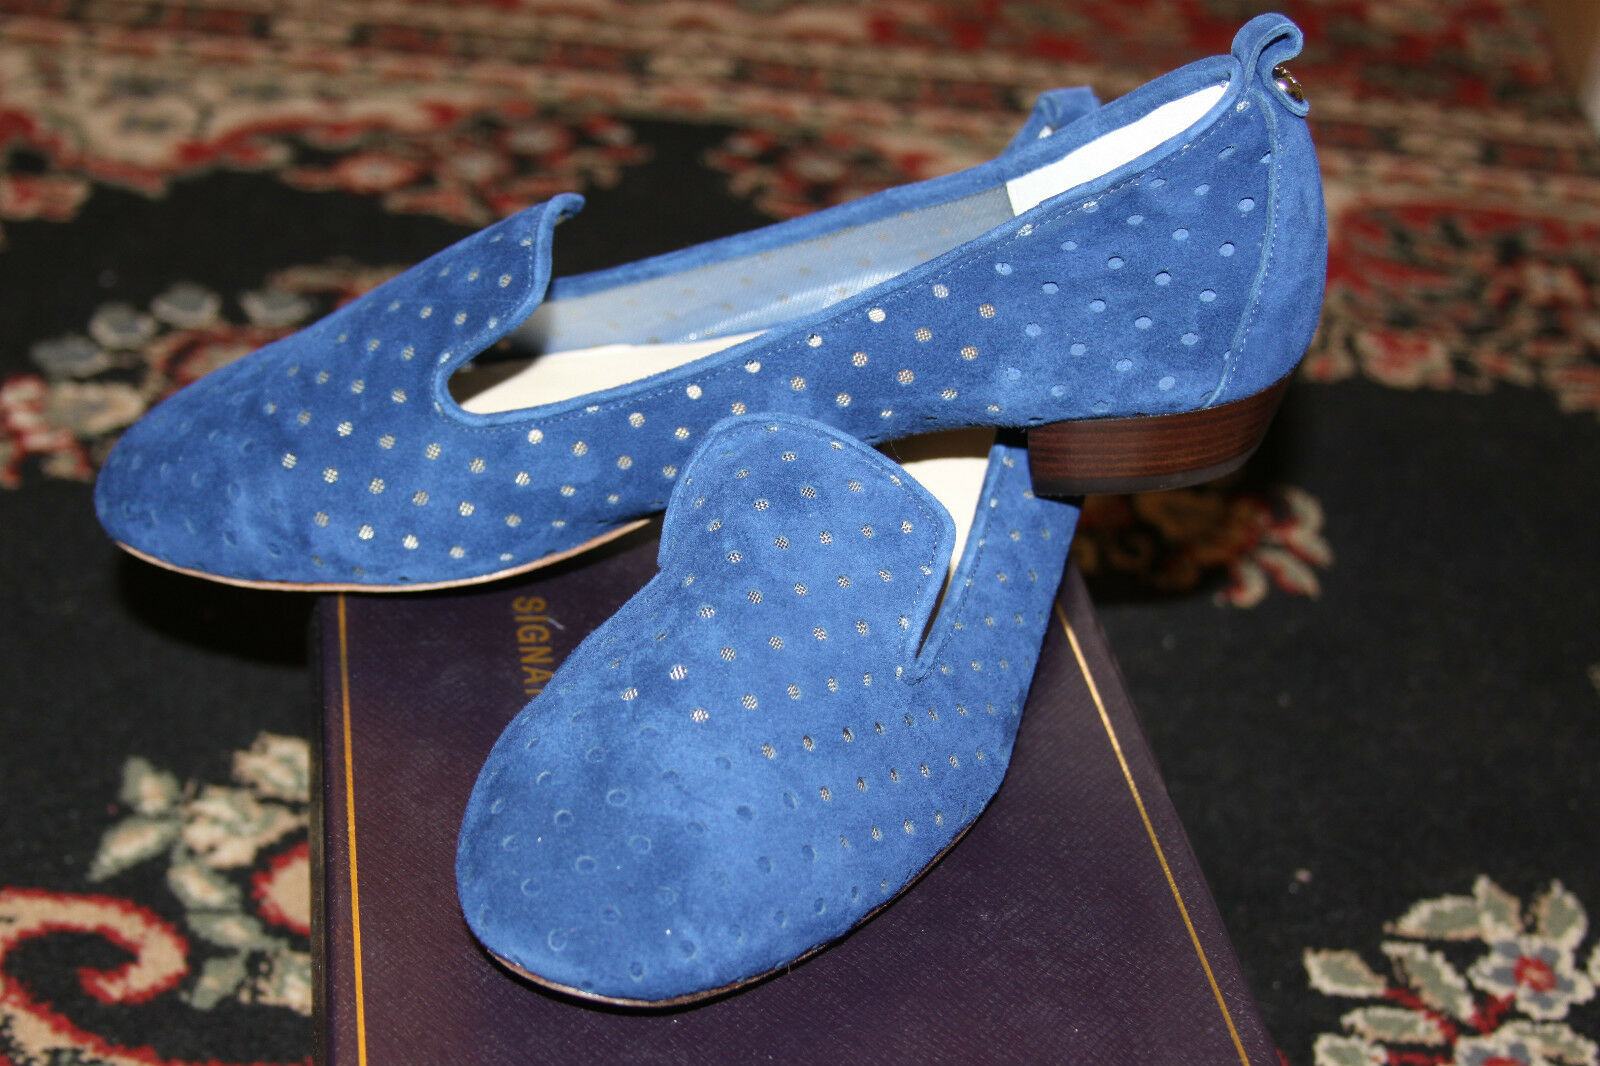 VINCE CAMUTO SIGNATURE VI-NADELLE TWILIGHT blueE blueE blueE  KIDSUEDE OXFORD SIZE 9.5M a410ad